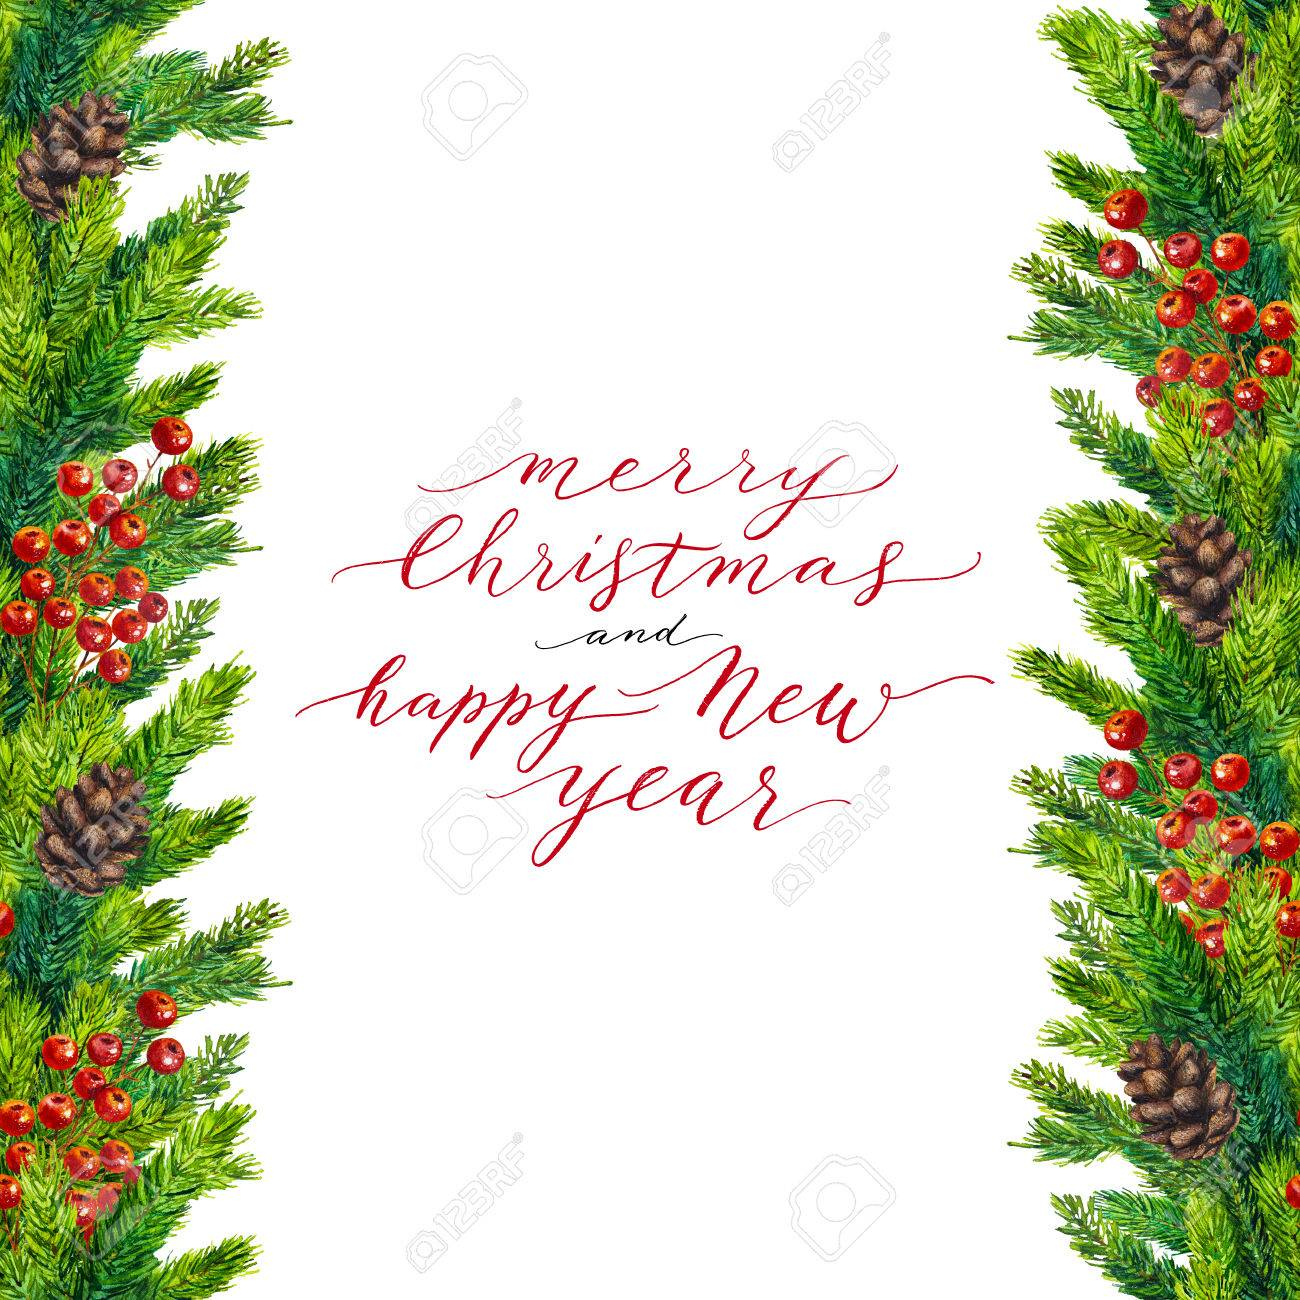 merry christmas and happy new year text on watercolor christmas border of fir branches cones